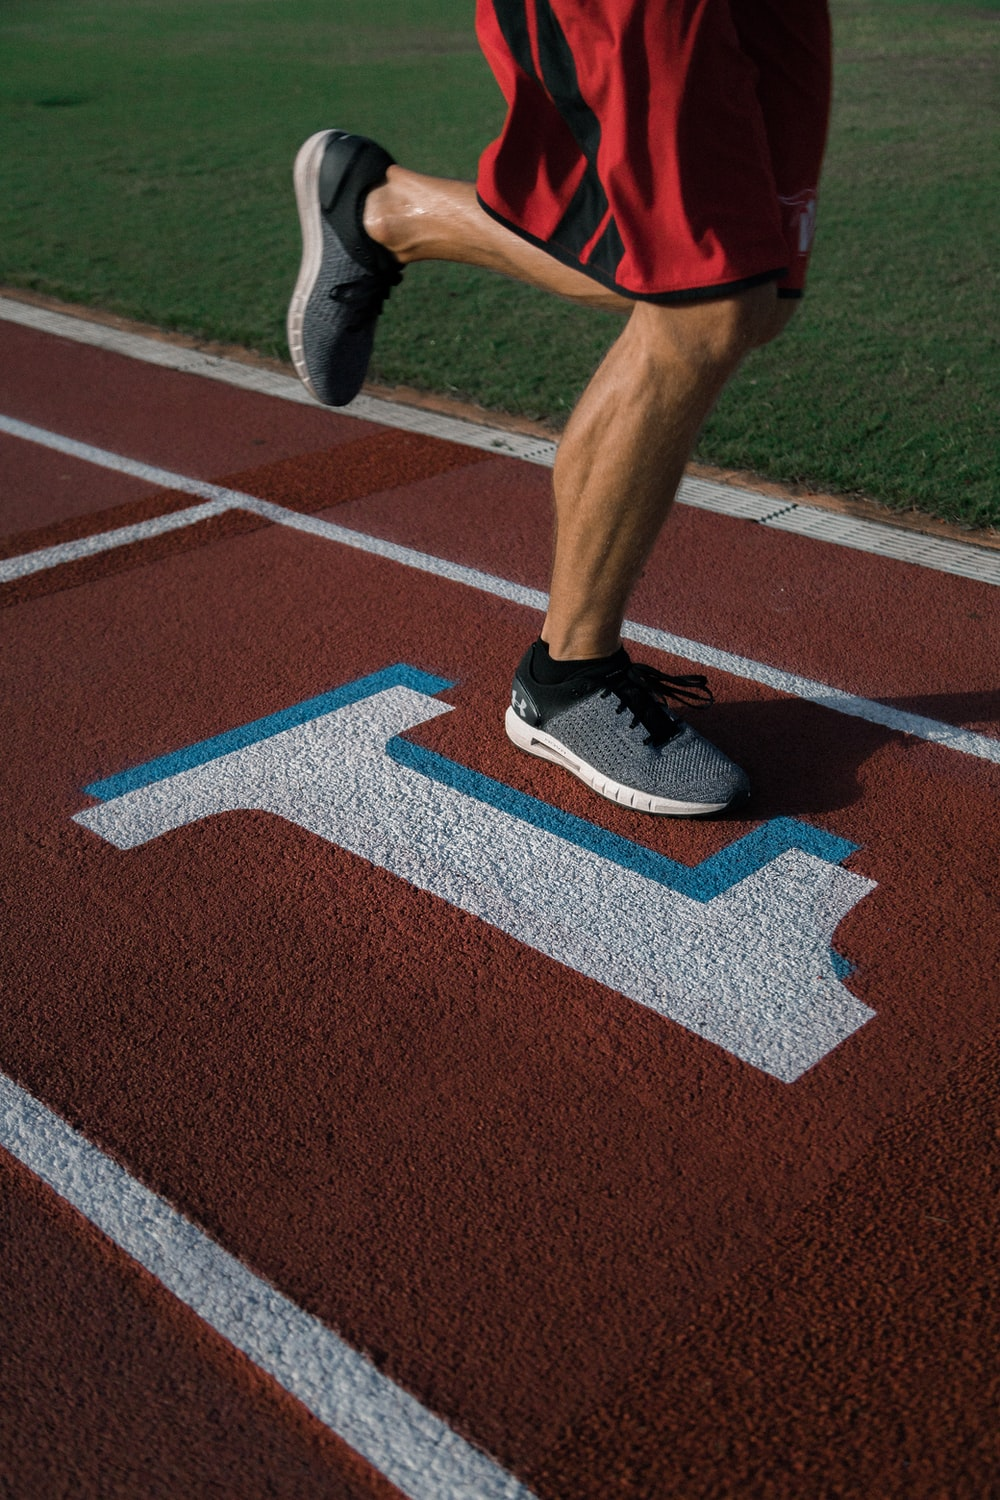 person running on tracking field